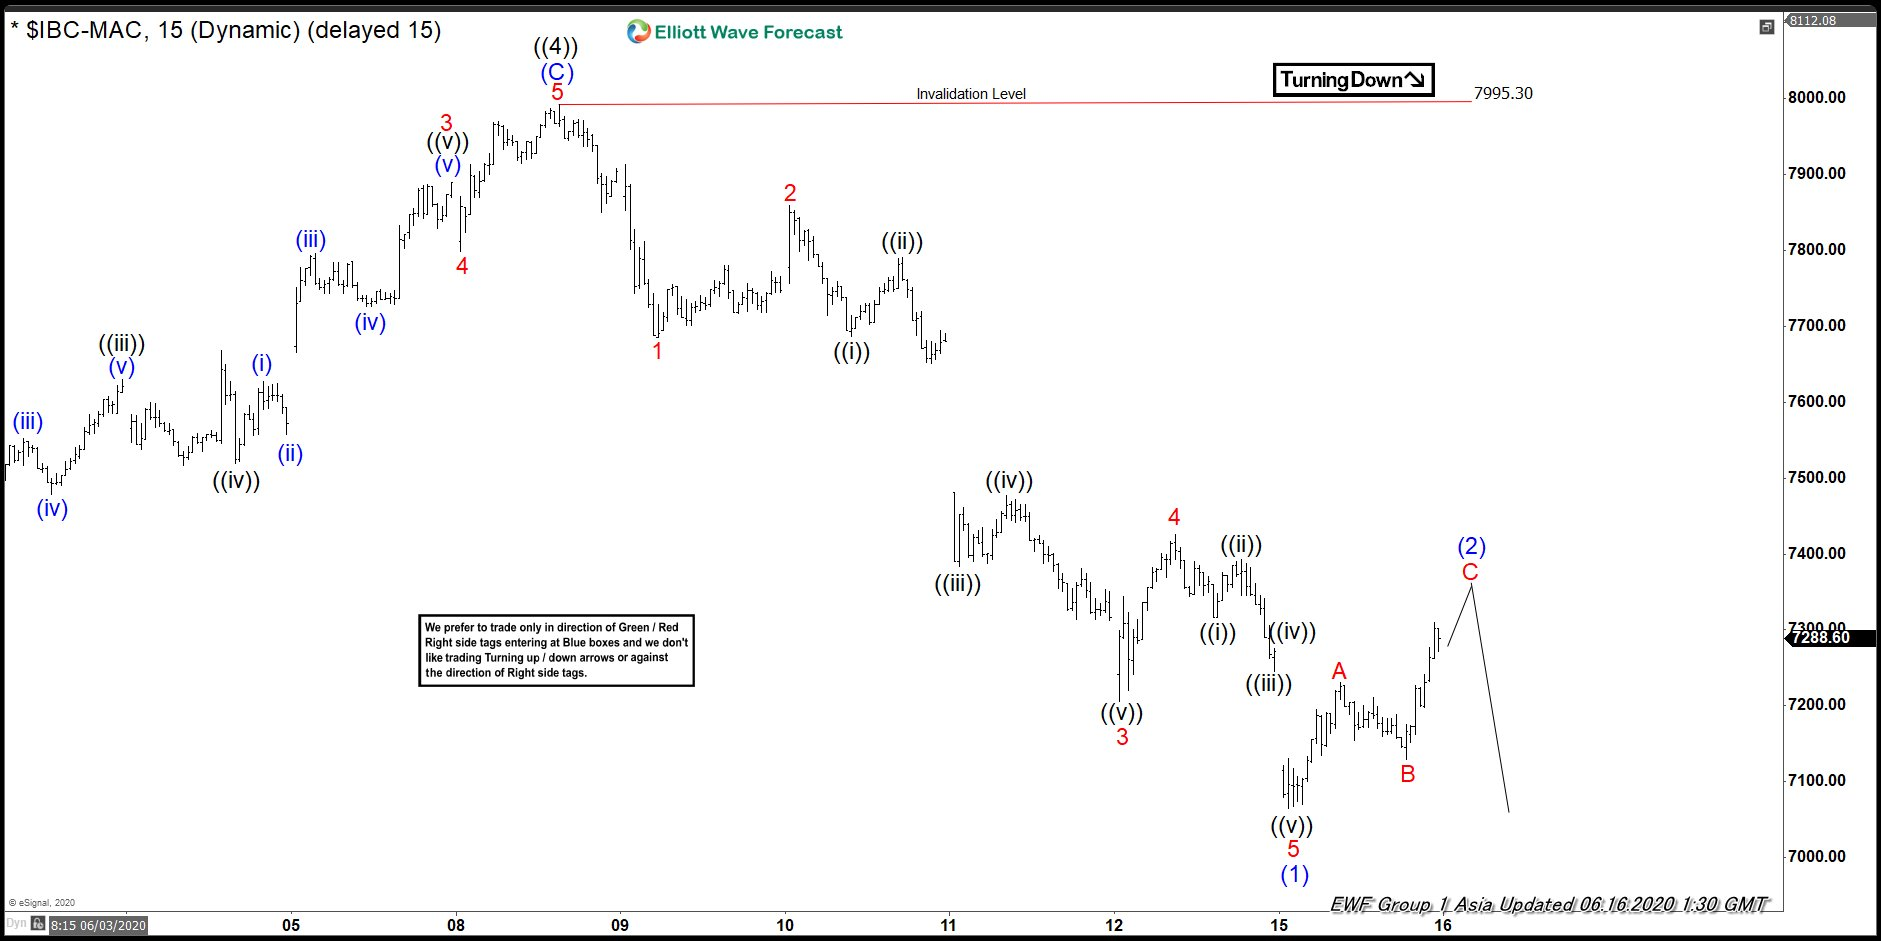 Elliott Wave View: IBEX Has Turned Lower